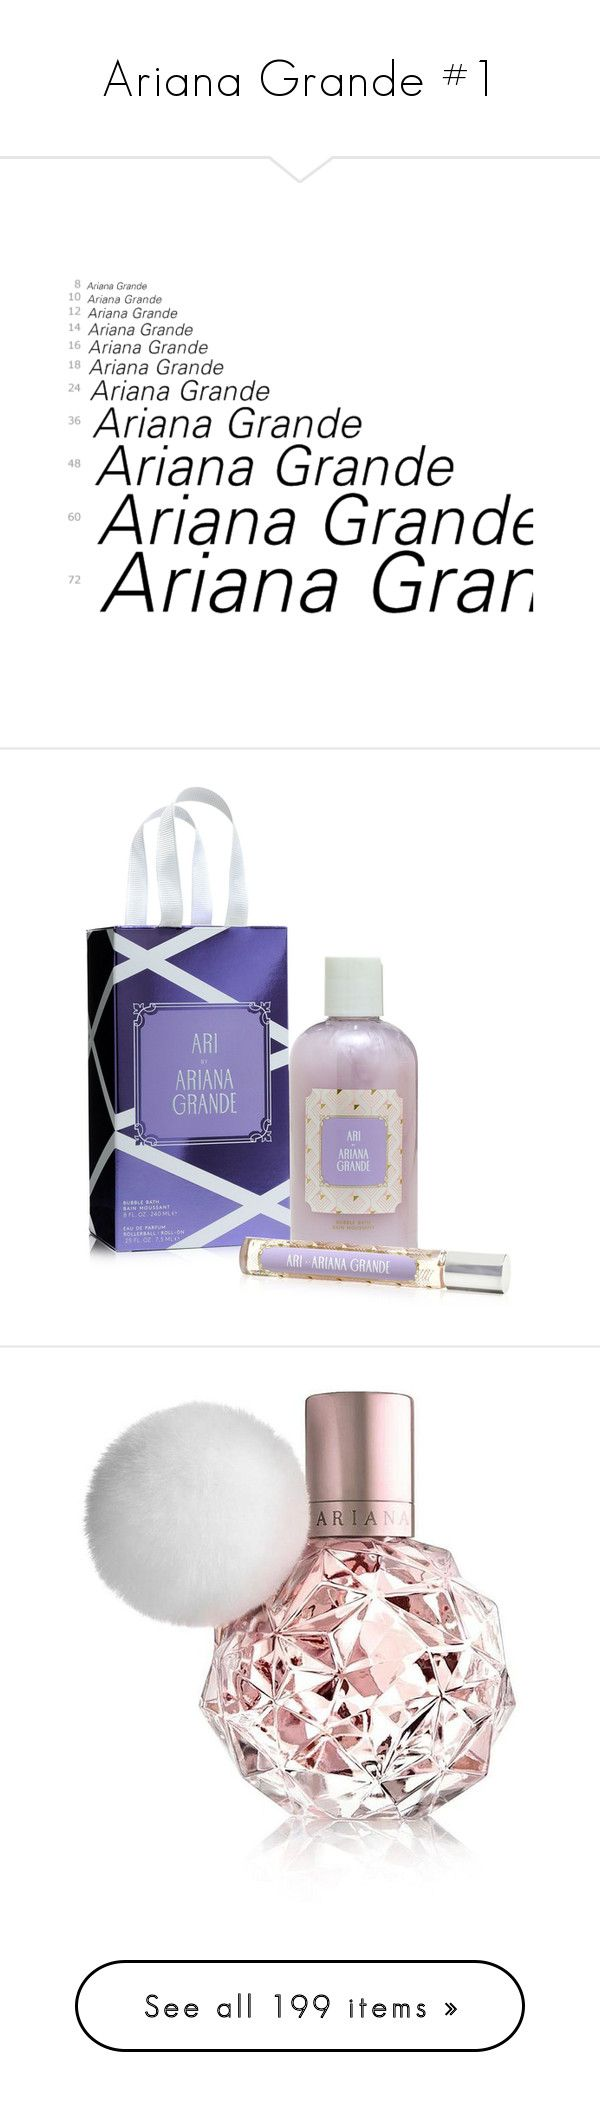 """""""Ariana Grande #1"""" by angiemx ❤ liked on Polyvore featuring ariana grande, words, ariana, backgrounds, text, beauty products, gift sets & kits, no color, bubble bath and fragrance"""